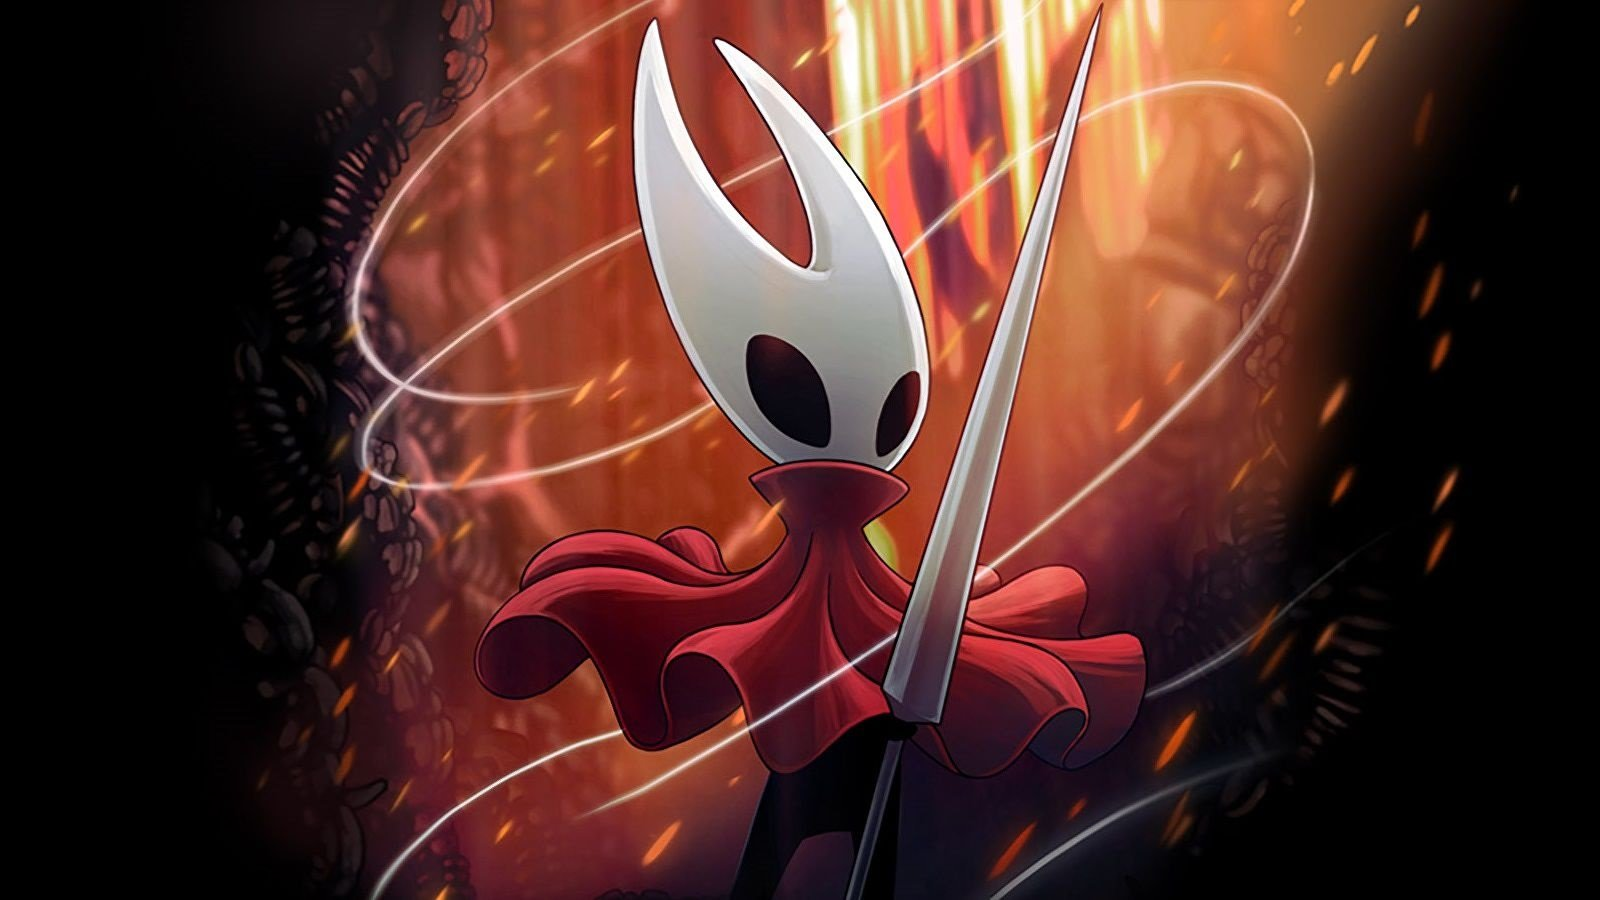 It doesn't look like we're getting any Hollow Knight: Silksong news at E3 screenshot